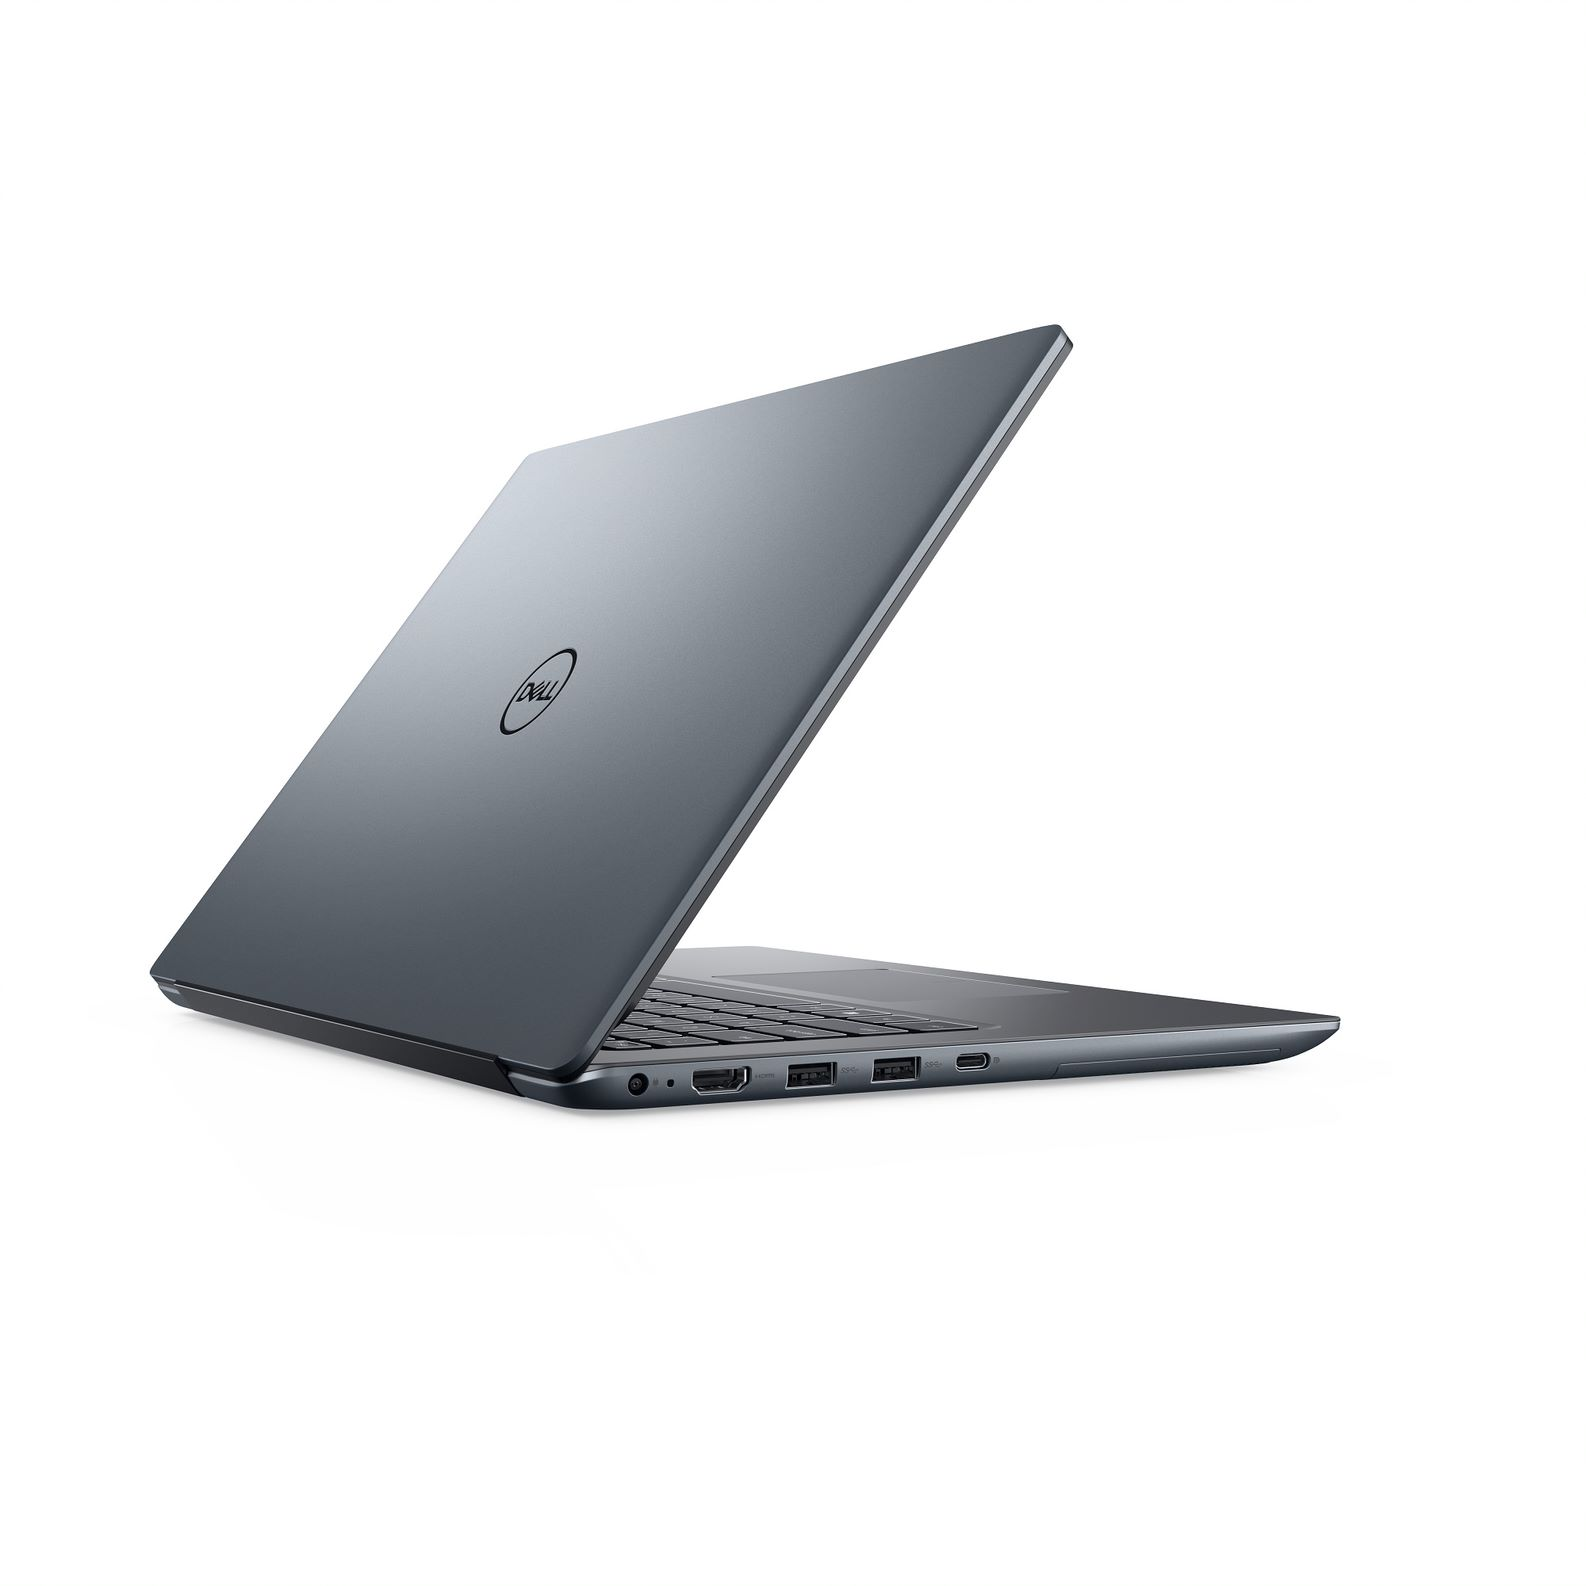 "Laptop DELL Vostro 5490 14"" FHD i7-10510U 8GB 256GB SSD MX250 BK FPR BT W10P 3YBWOS"